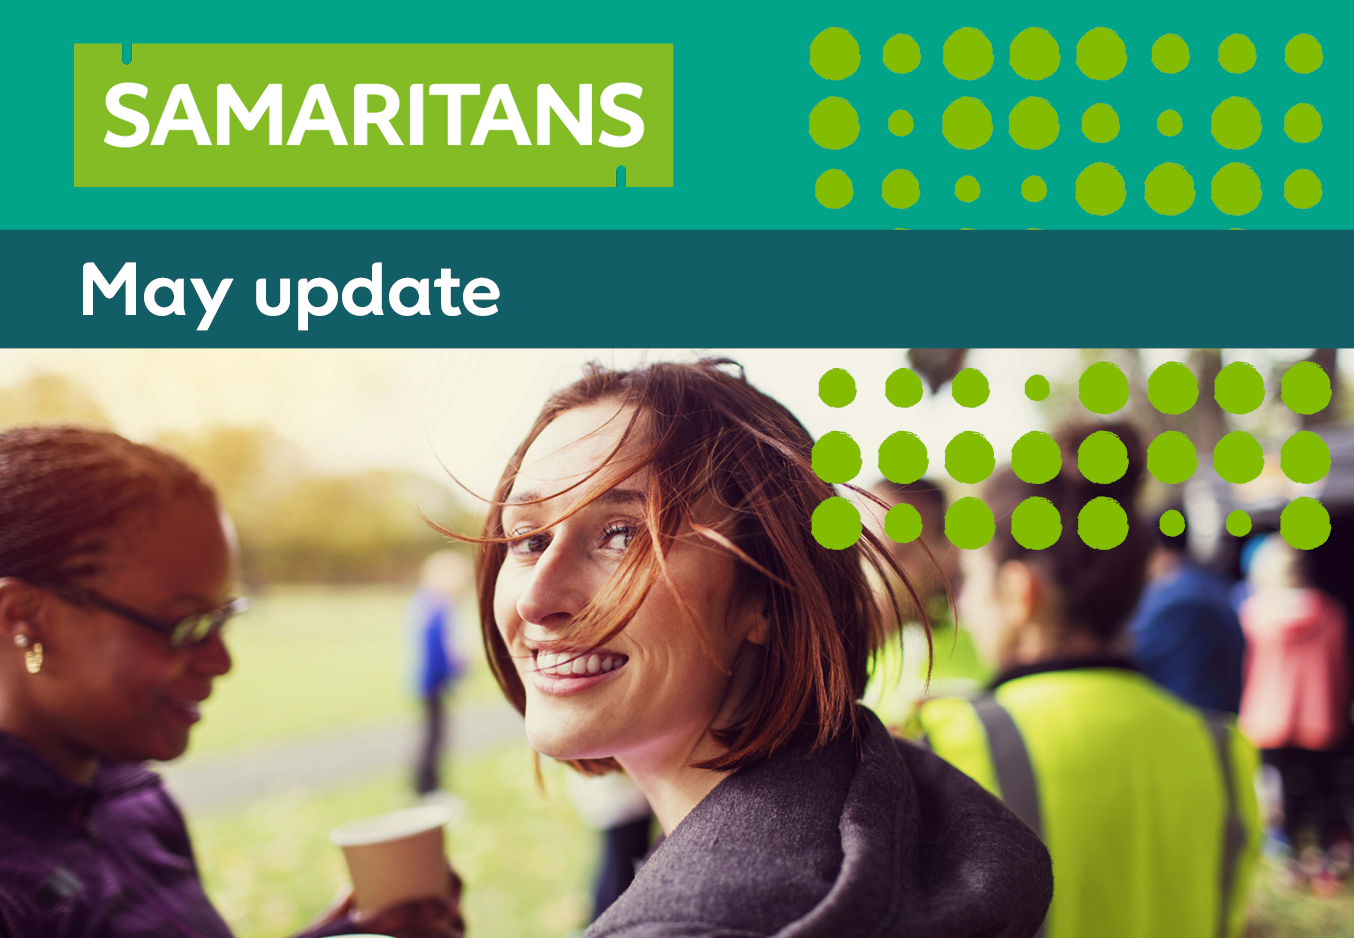 Samaritans monthly update banner - with picture of woman looking at camera